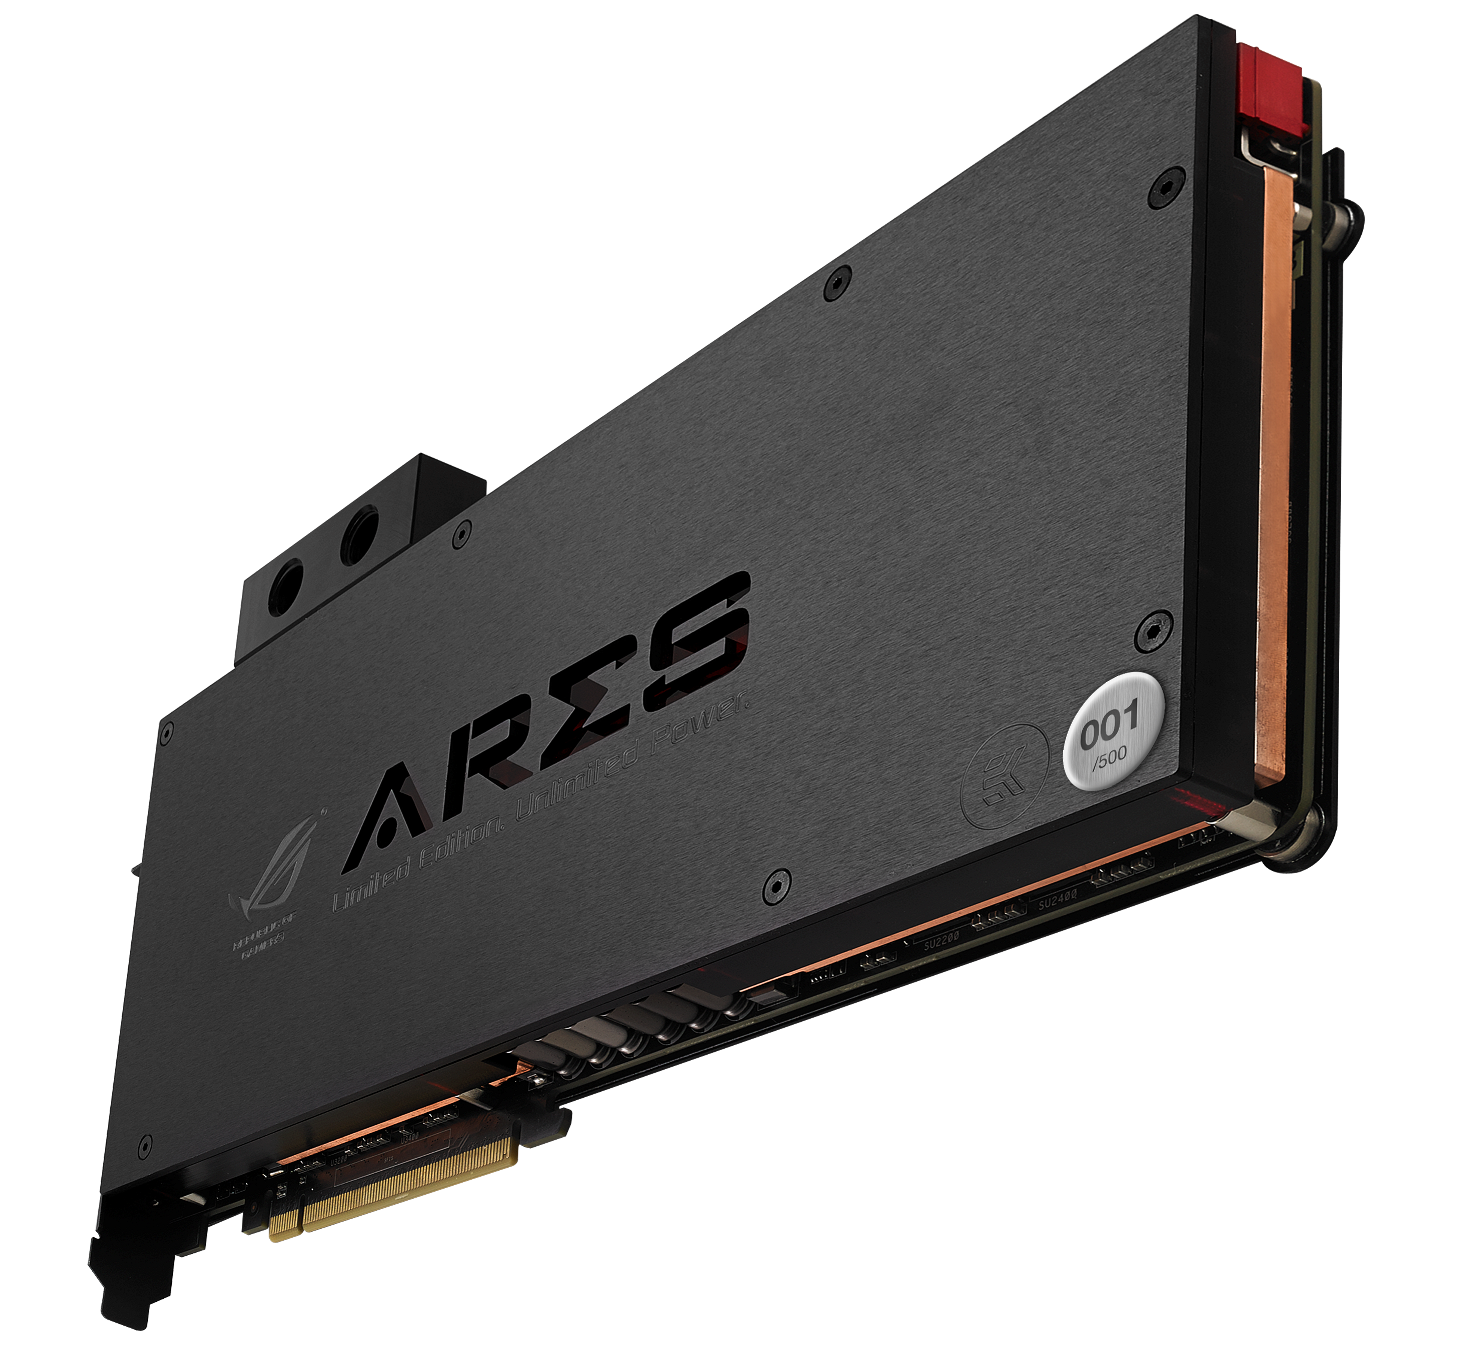 ASUS ROG Ares III water-cooled gaming graphics card